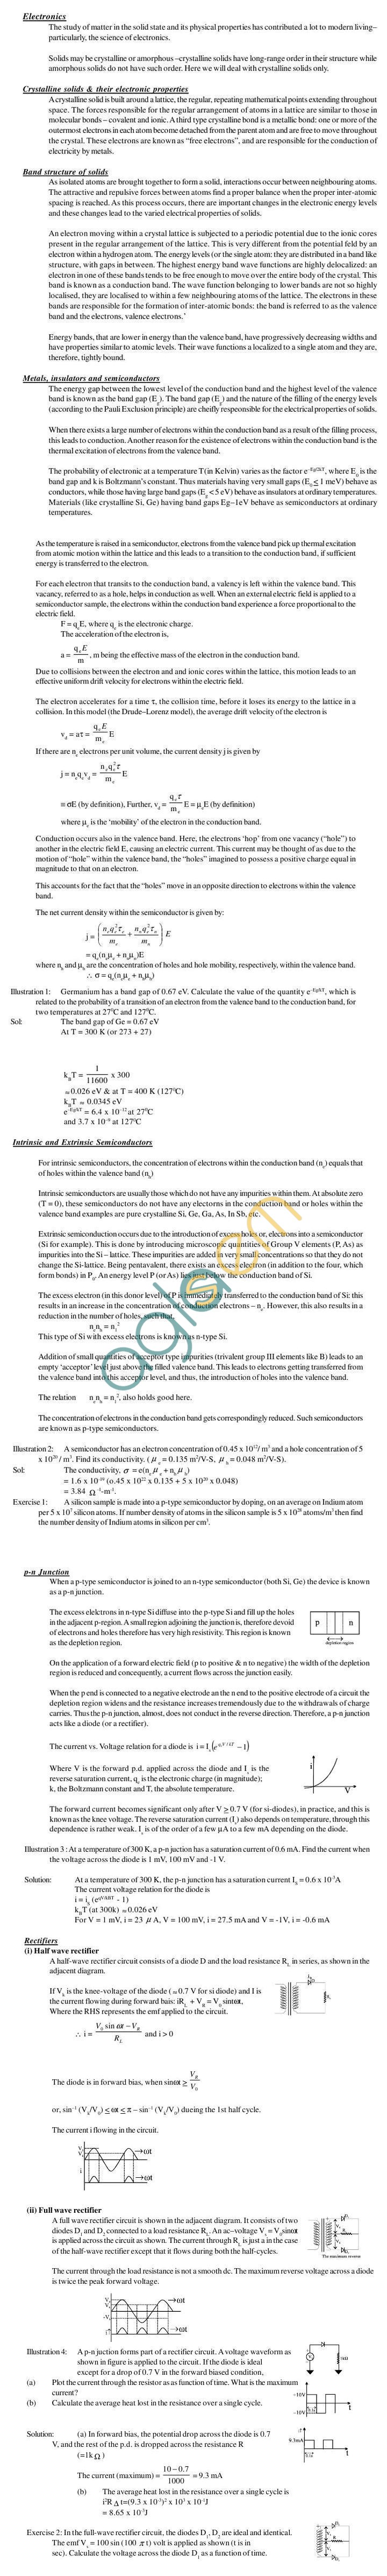 Physics Study Material - Semiconducter Physics